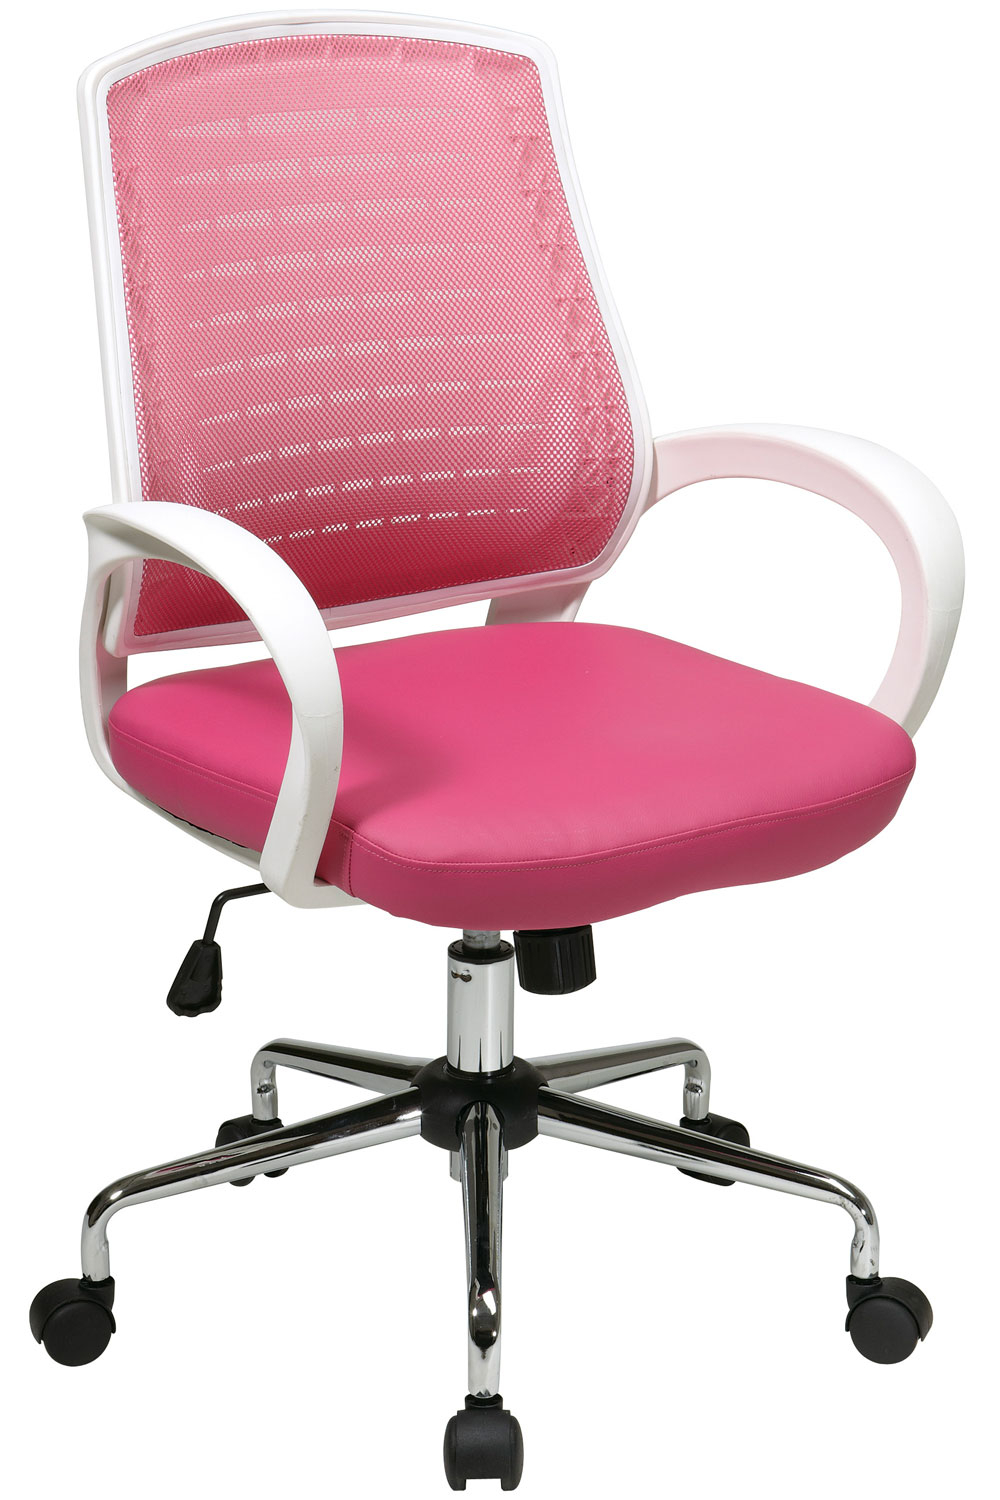 Office Max Pink Desk Chair Stunning Pretty Chairs Decorating pertaining to size 1000 X 1500